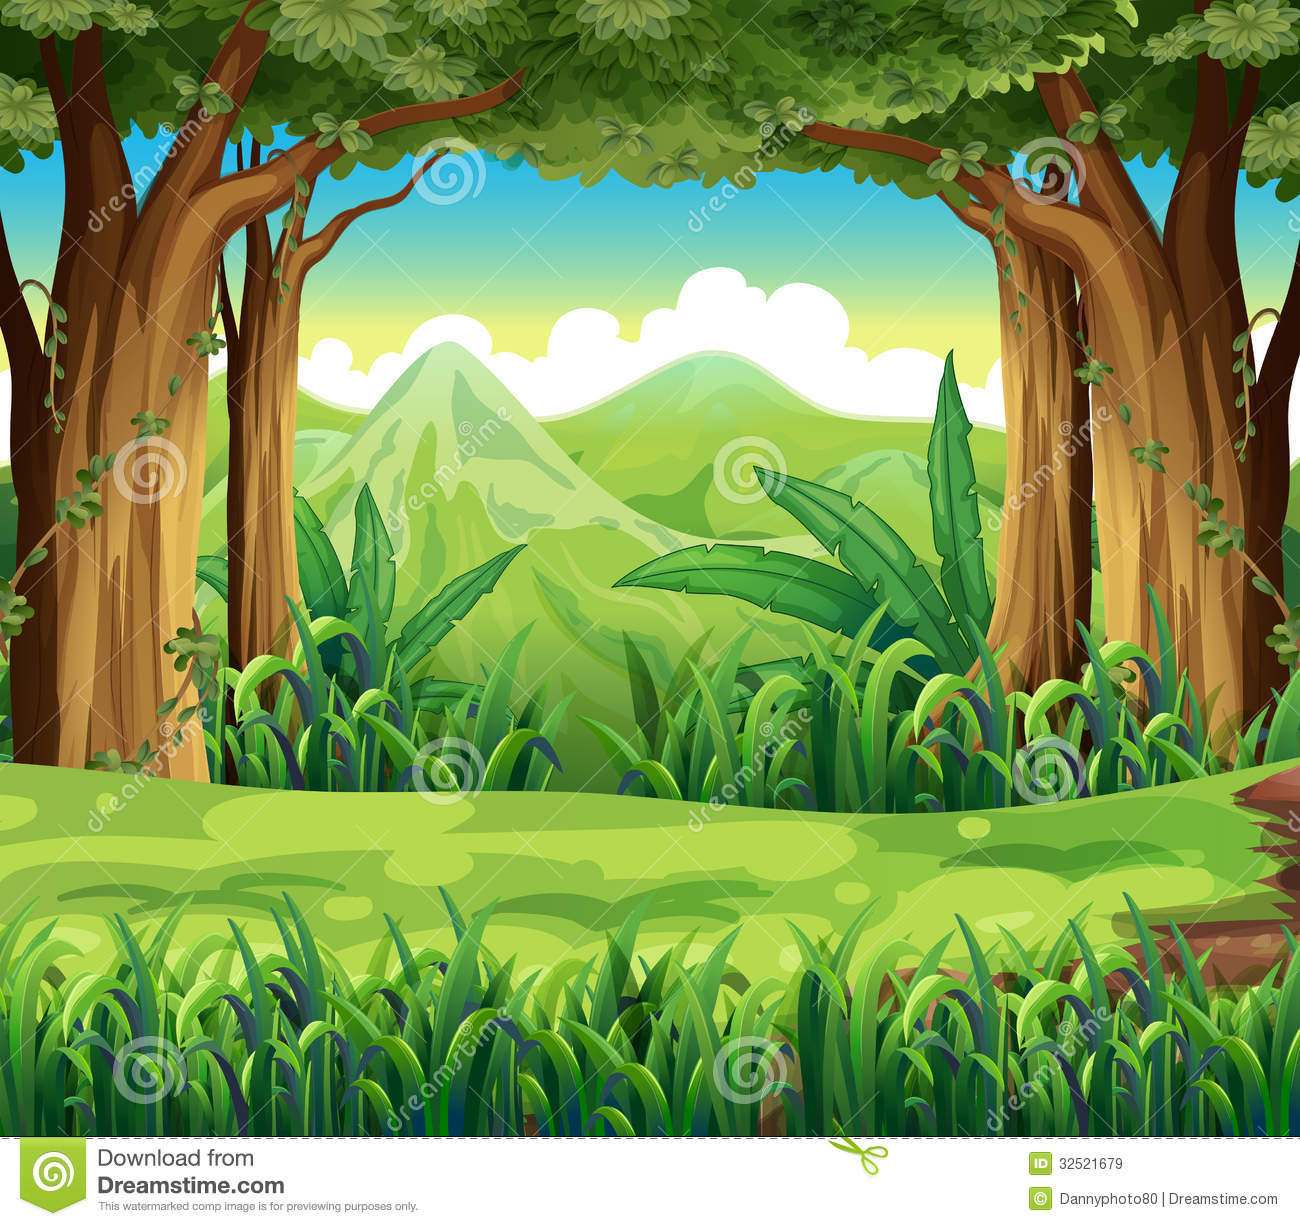 The Green Forest Royalty Free Stock Images - Image: 32521679